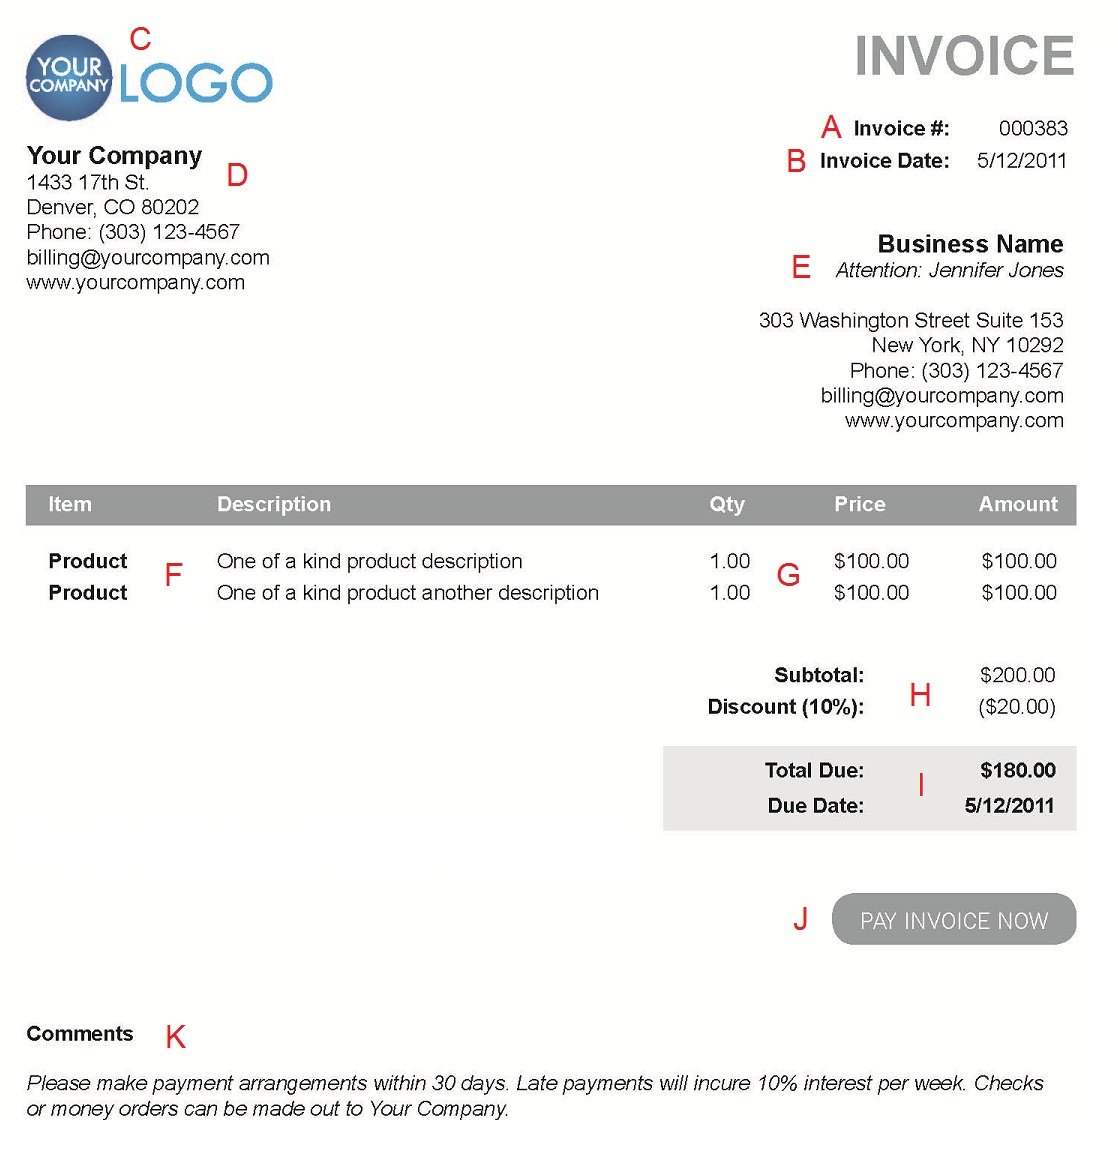 Bringjacobolivierhomeus  Ravishing The  Different Sections Of An Electronic Payment Invoice With Interesting A  With Easy On The Eye Payment Without Invoice Also Excel Invoice Template Free Download In Addition Computer Invoice Template And Draft Invoice Template As Well As Actual Invoice Additionally Meaning Of Invoicing From Paysimplecom With Bringjacobolivierhomeus  Interesting The  Different Sections Of An Electronic Payment Invoice With Easy On The Eye A  And Ravishing Payment Without Invoice Also Excel Invoice Template Free Download In Addition Computer Invoice Template From Paysimplecom